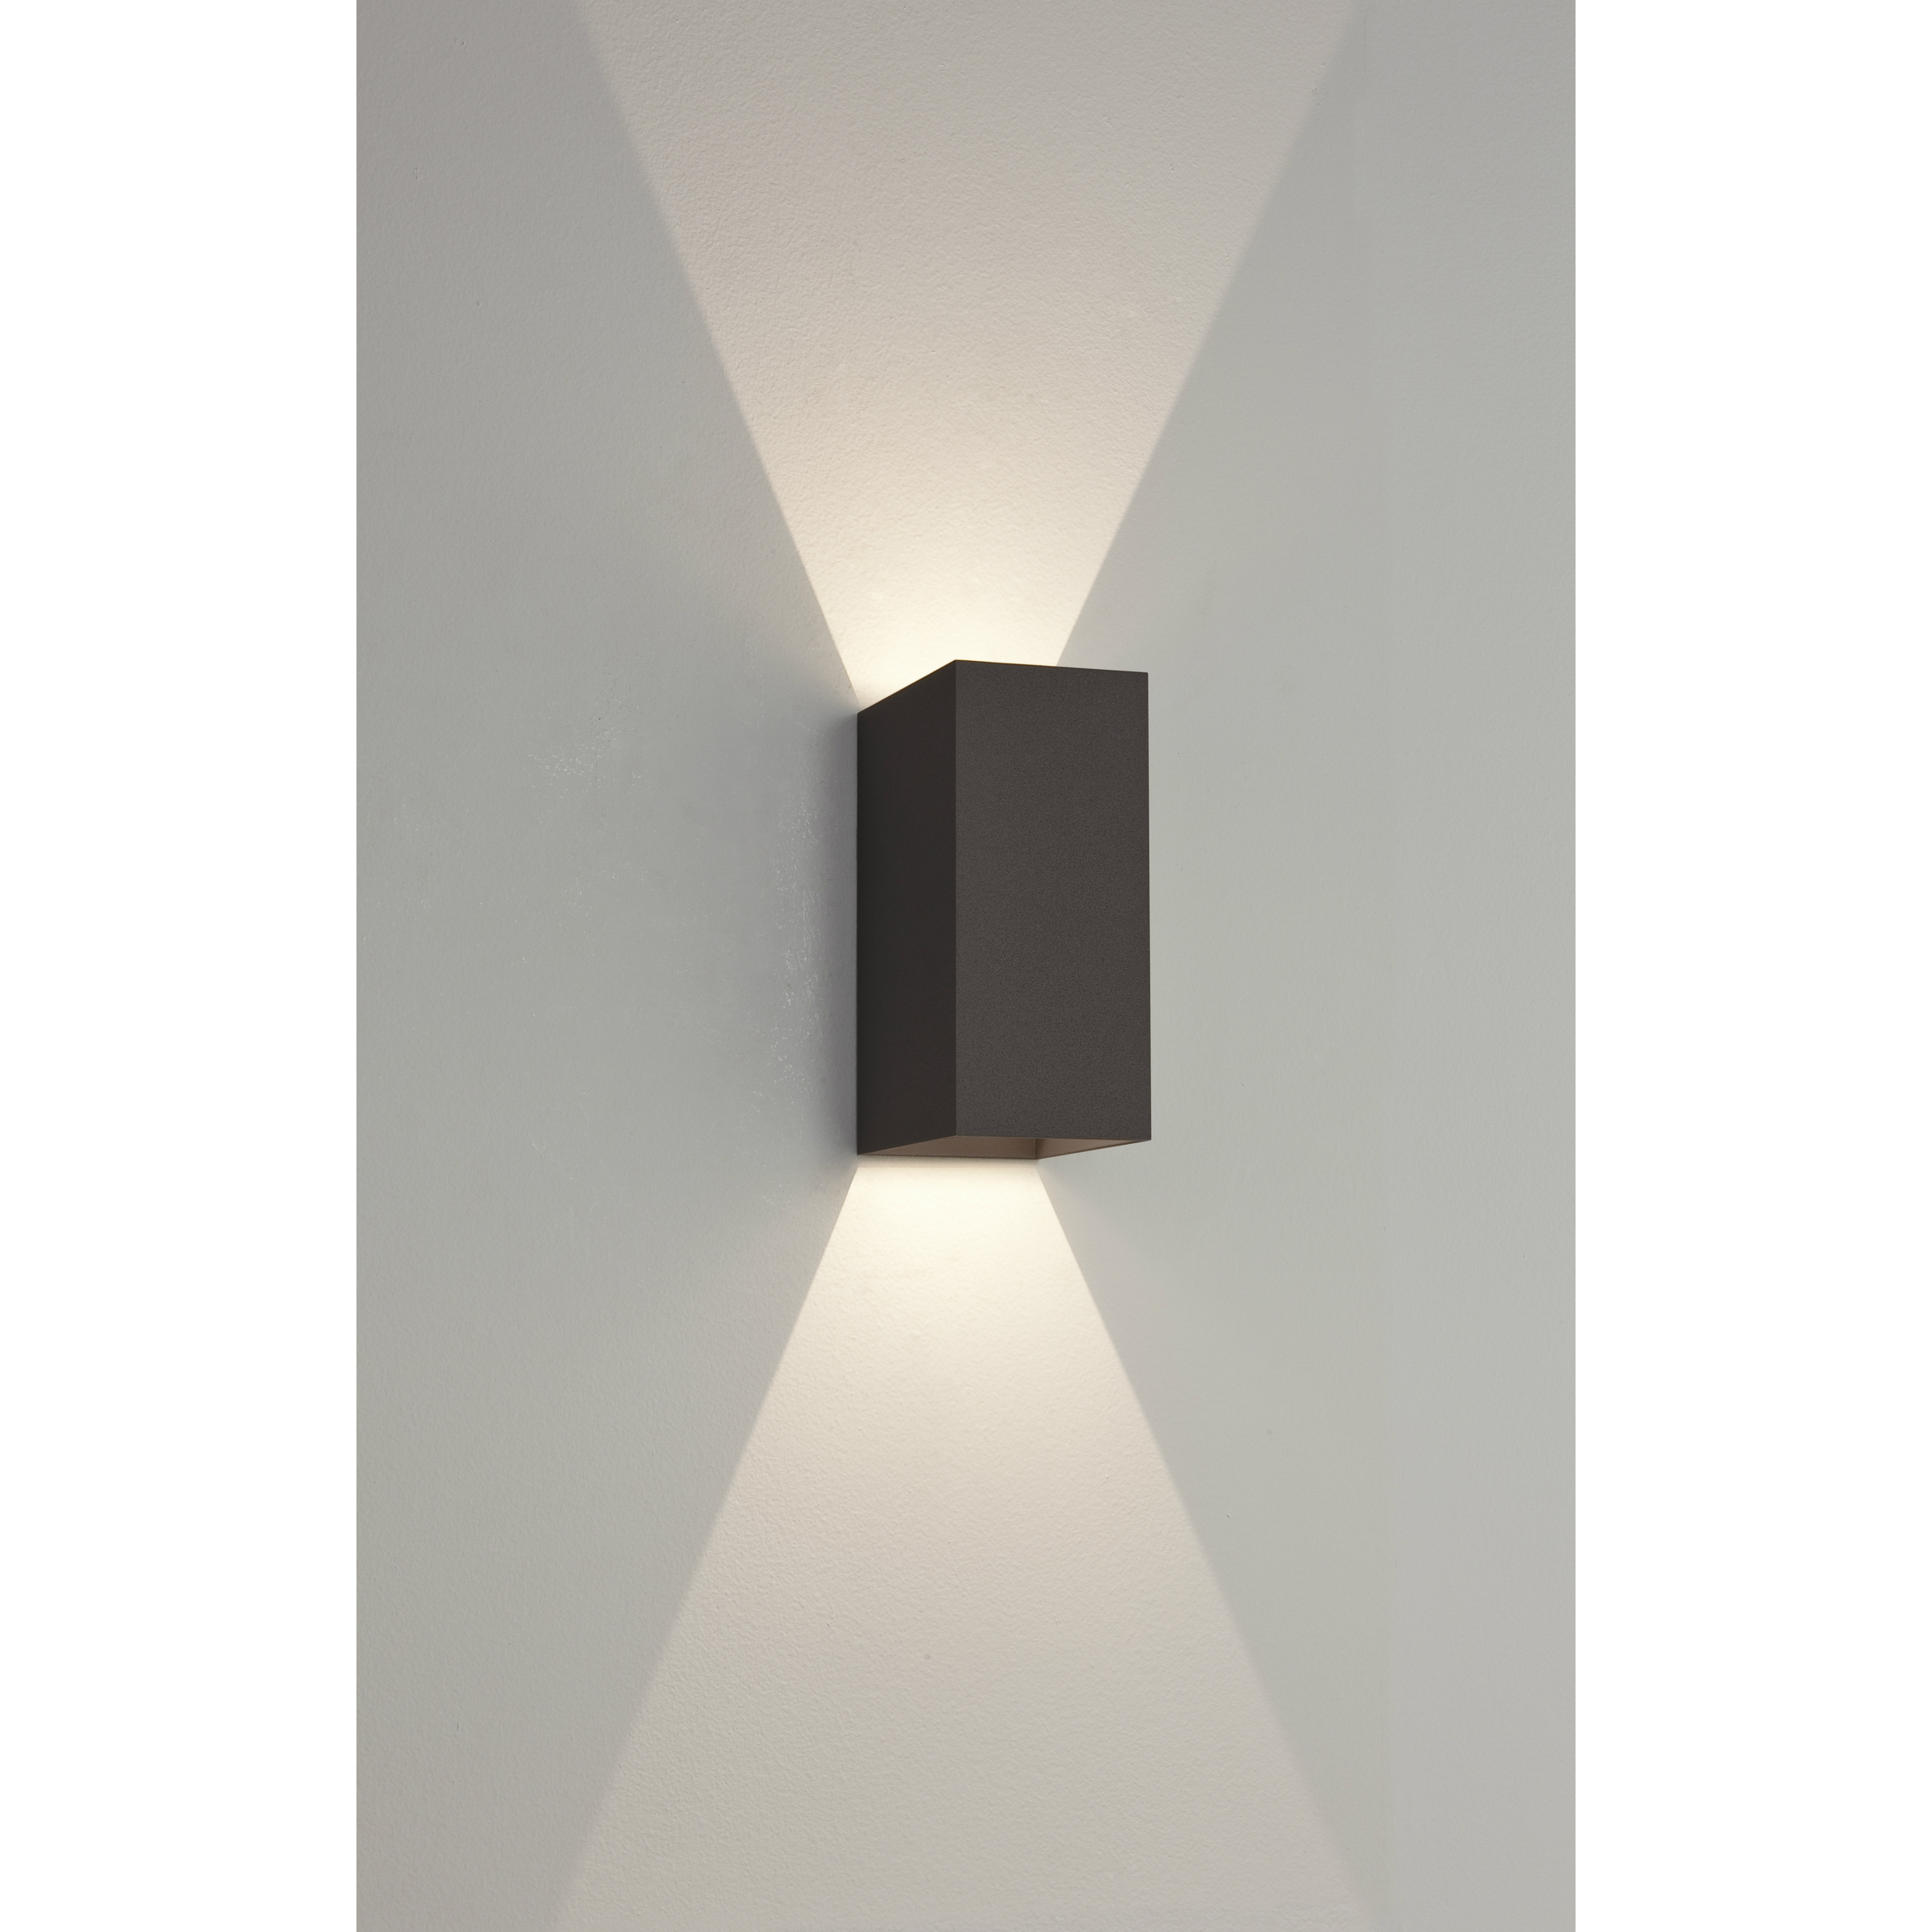 Half wall lanterns lights product categories light innovation oslo 160 black aloadofball